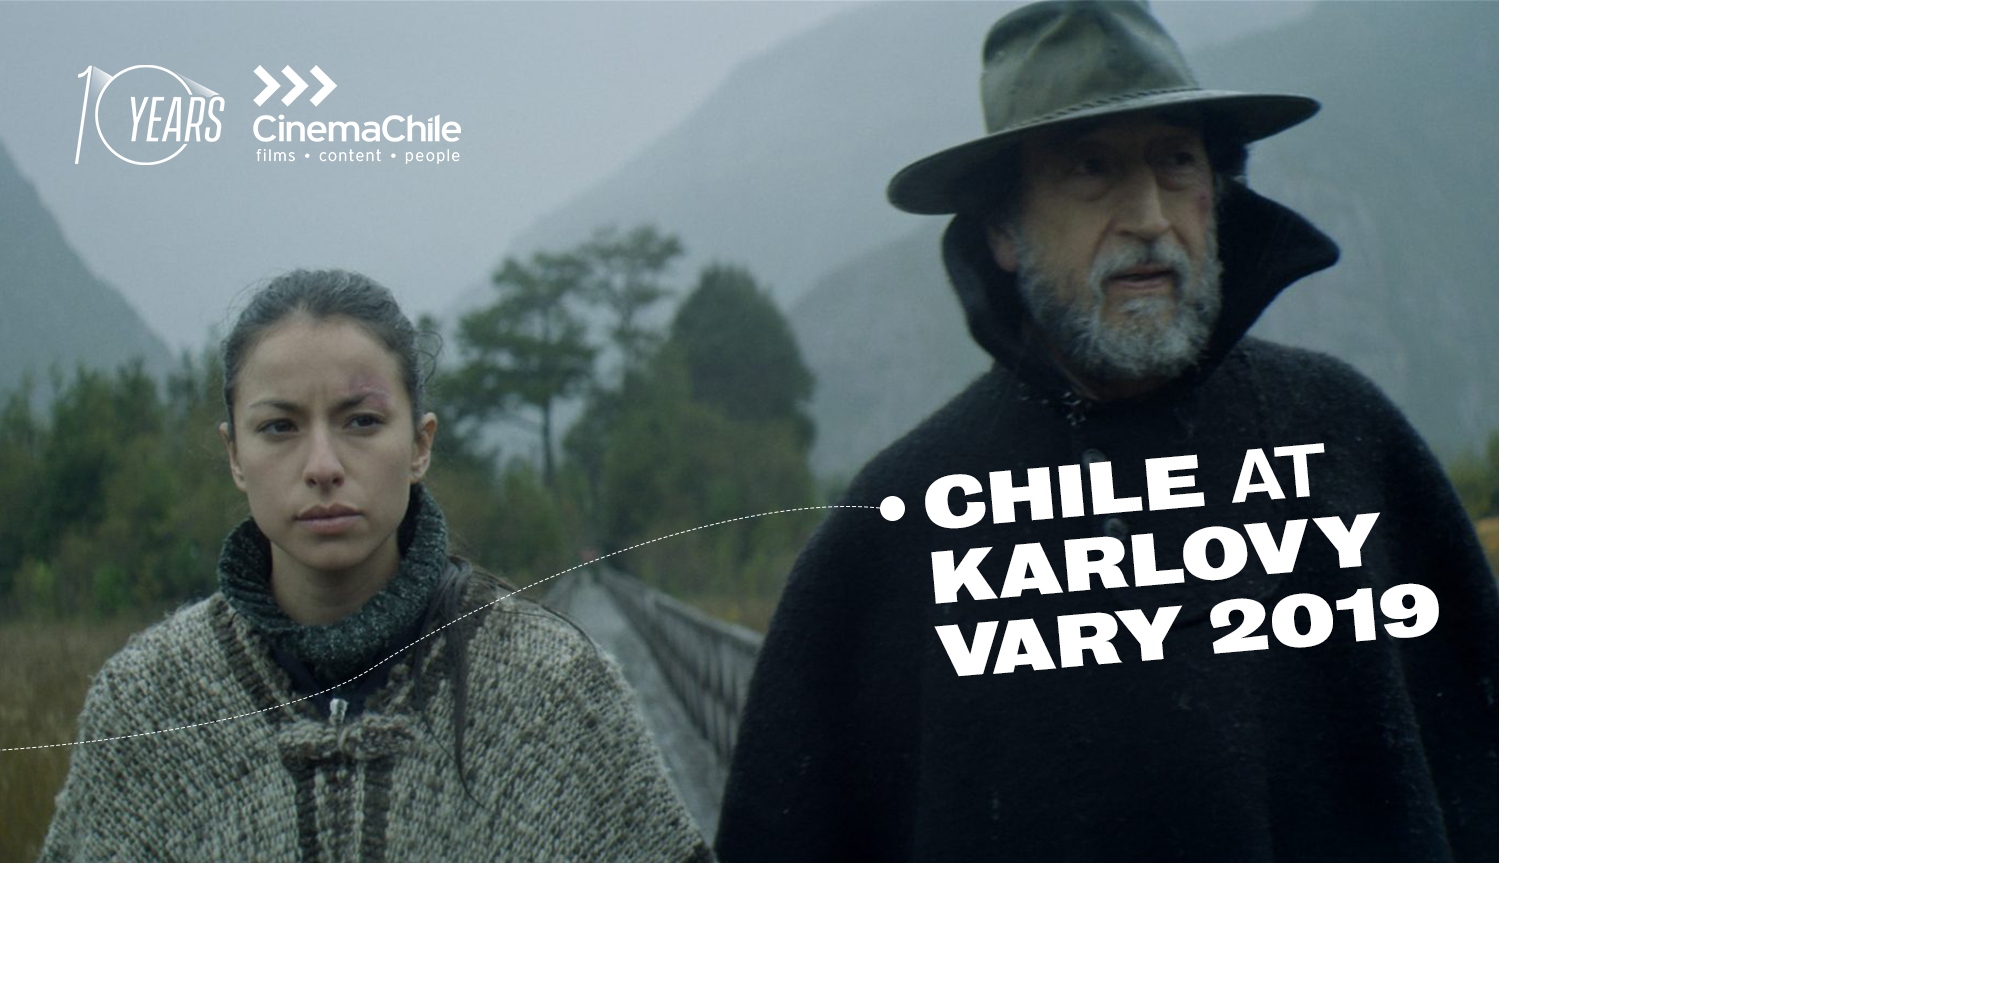 Chile returns to Karlovy Vary with a first feature and a documentary